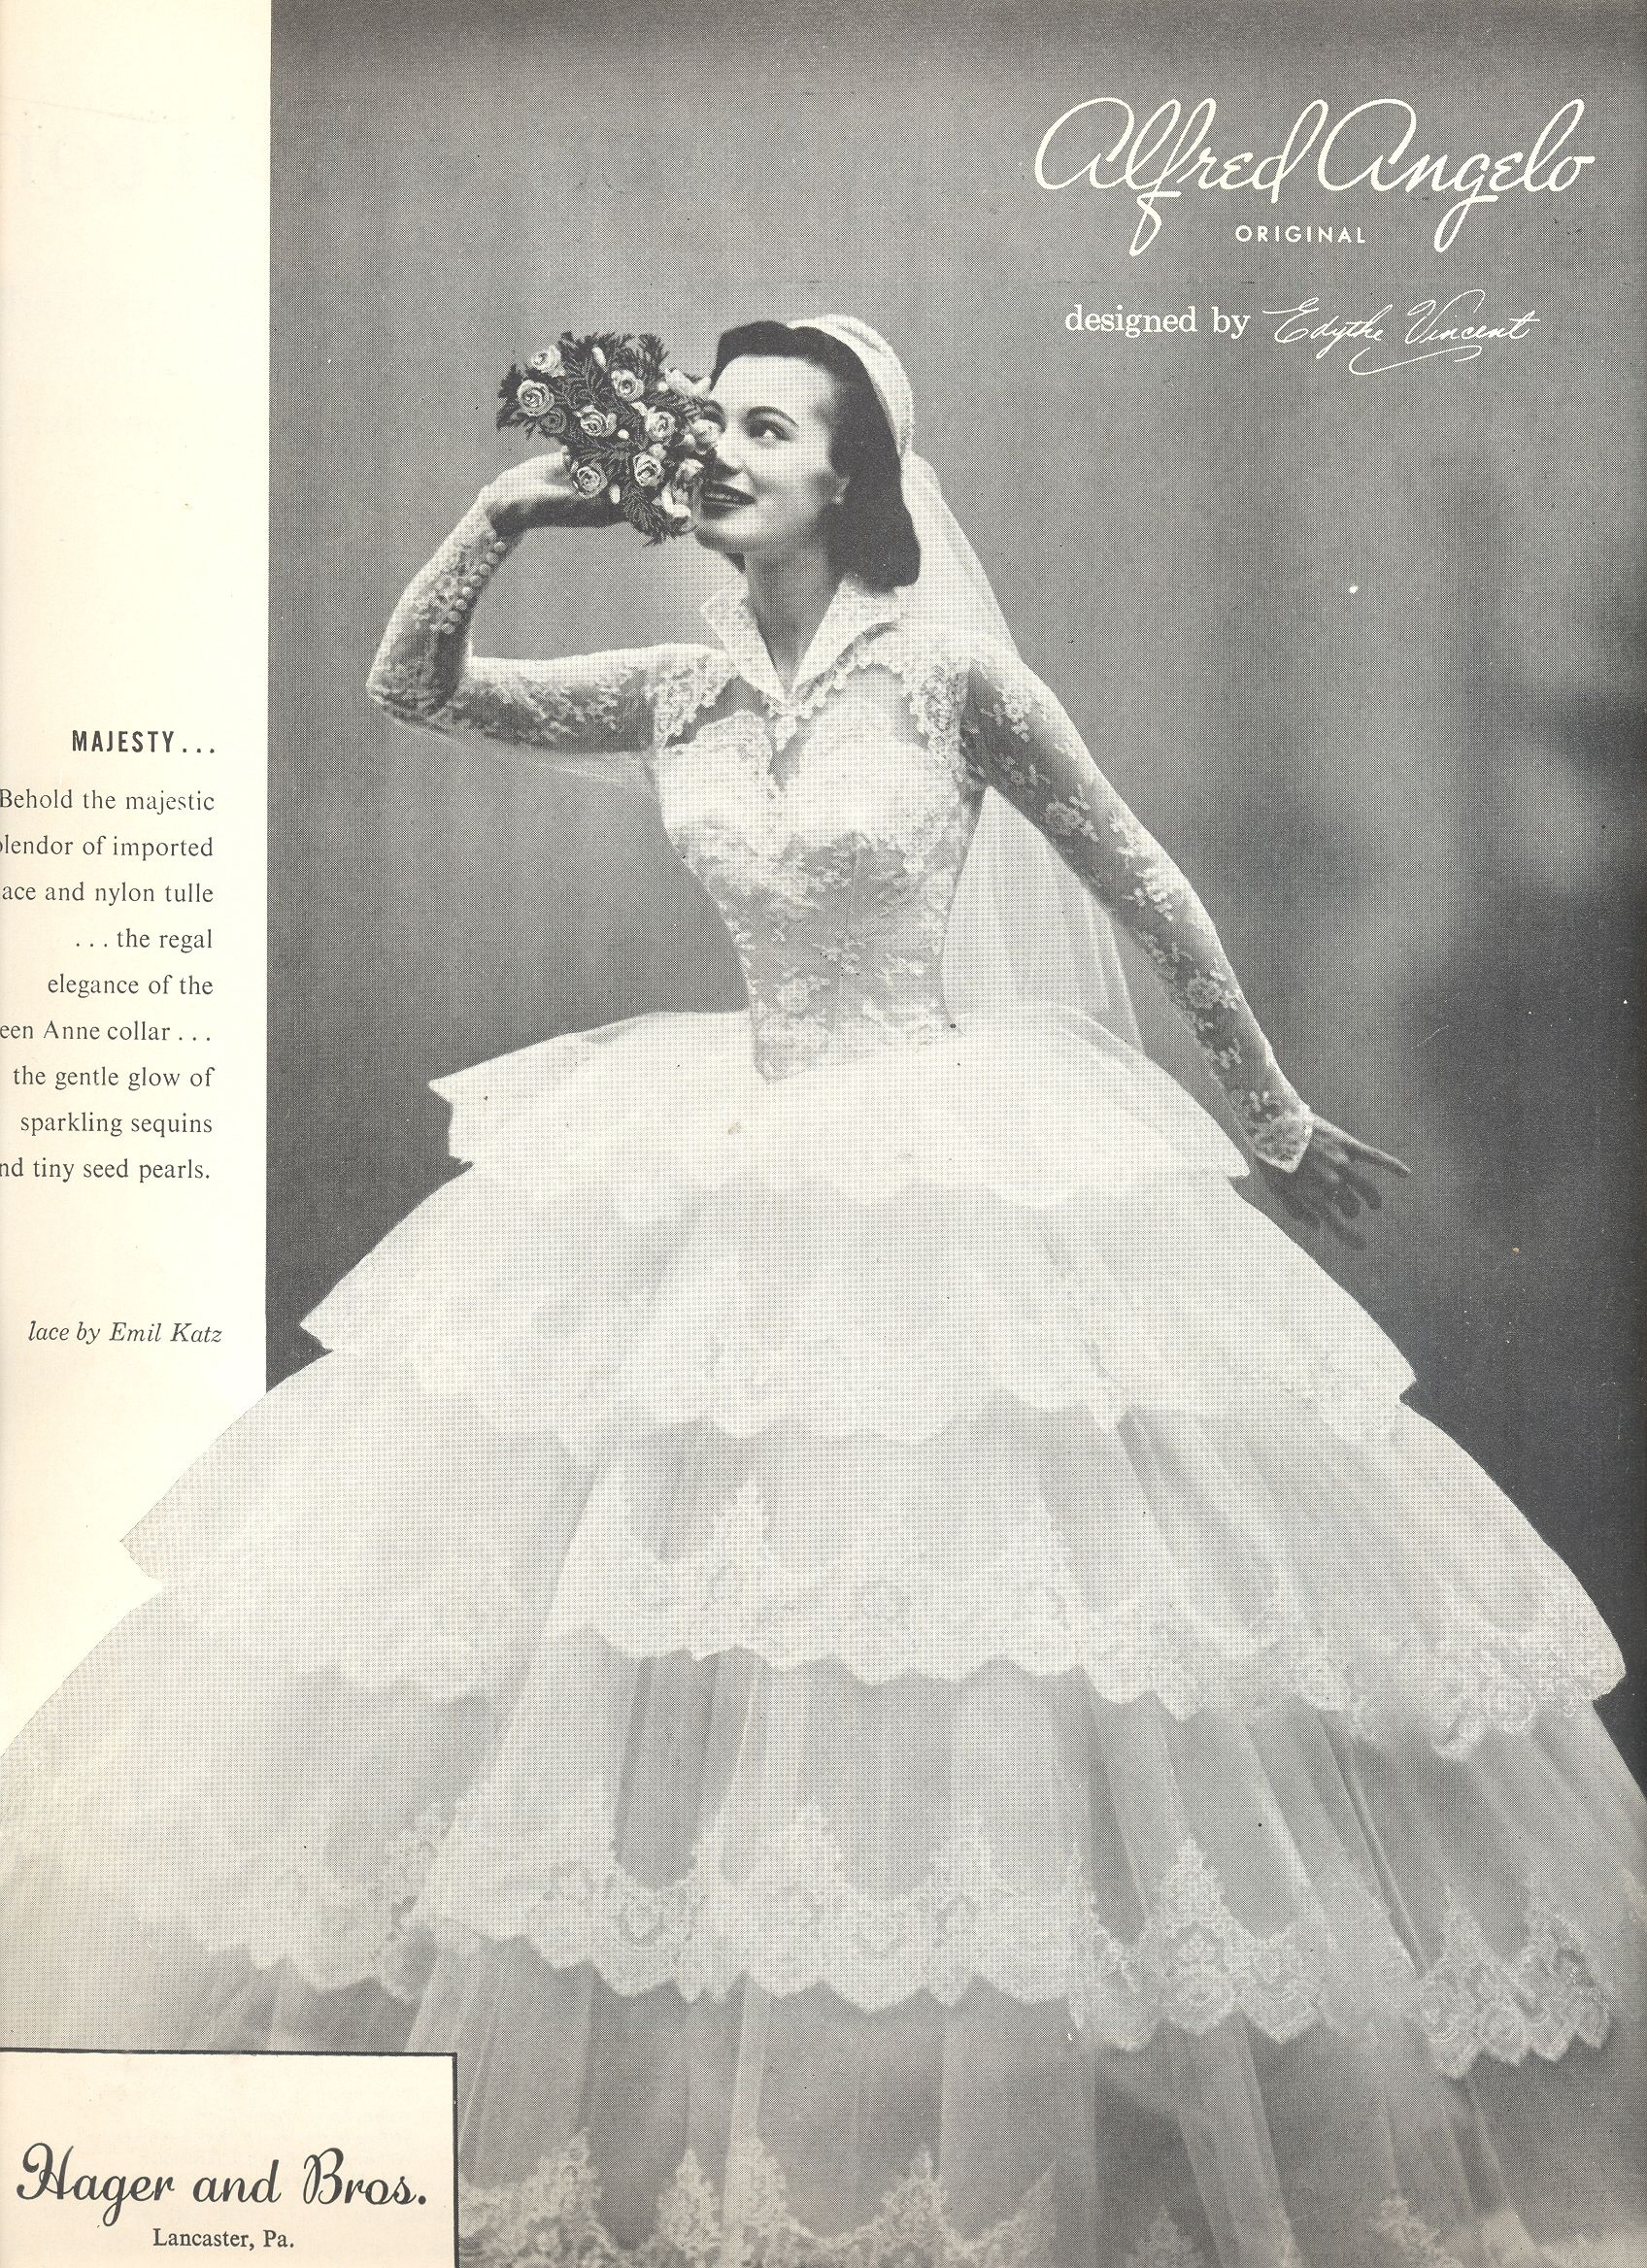 An Alfred Angelo Original Designed By Edythe Vincent 1956